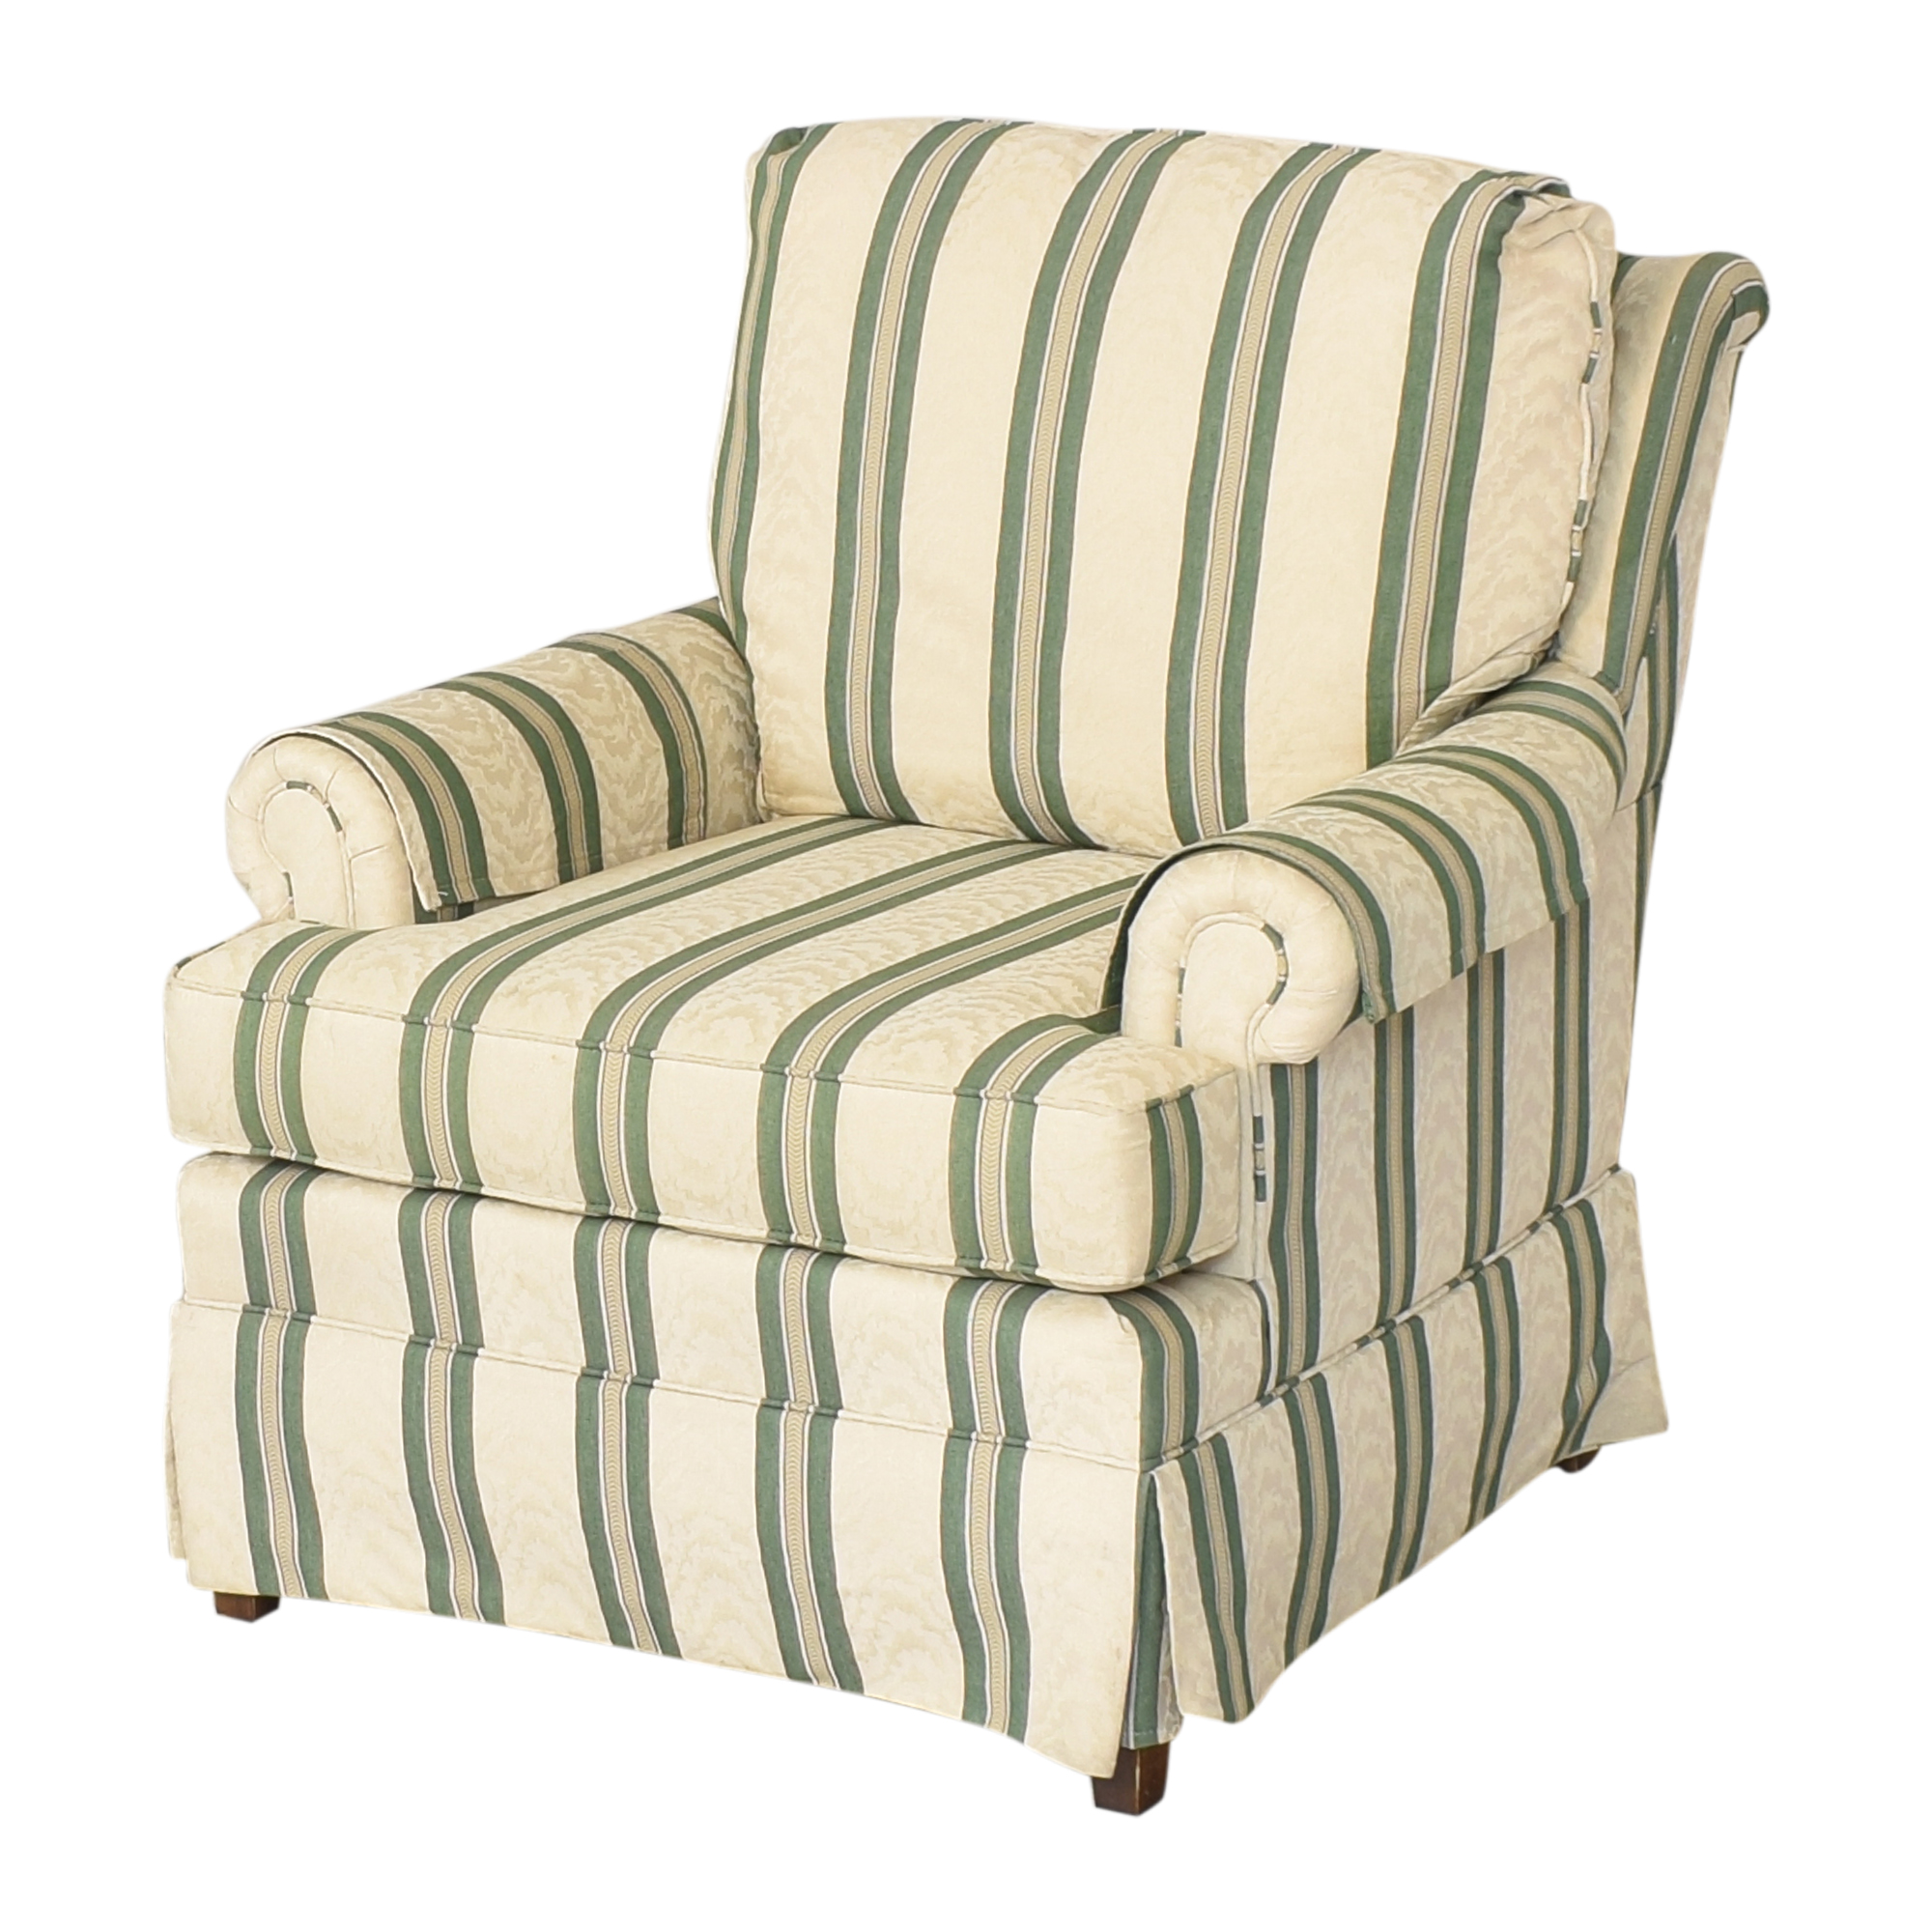 Pembrook Chair Pembrook Chair Upholstered Accent Chair and Ottoman Accent Chairs